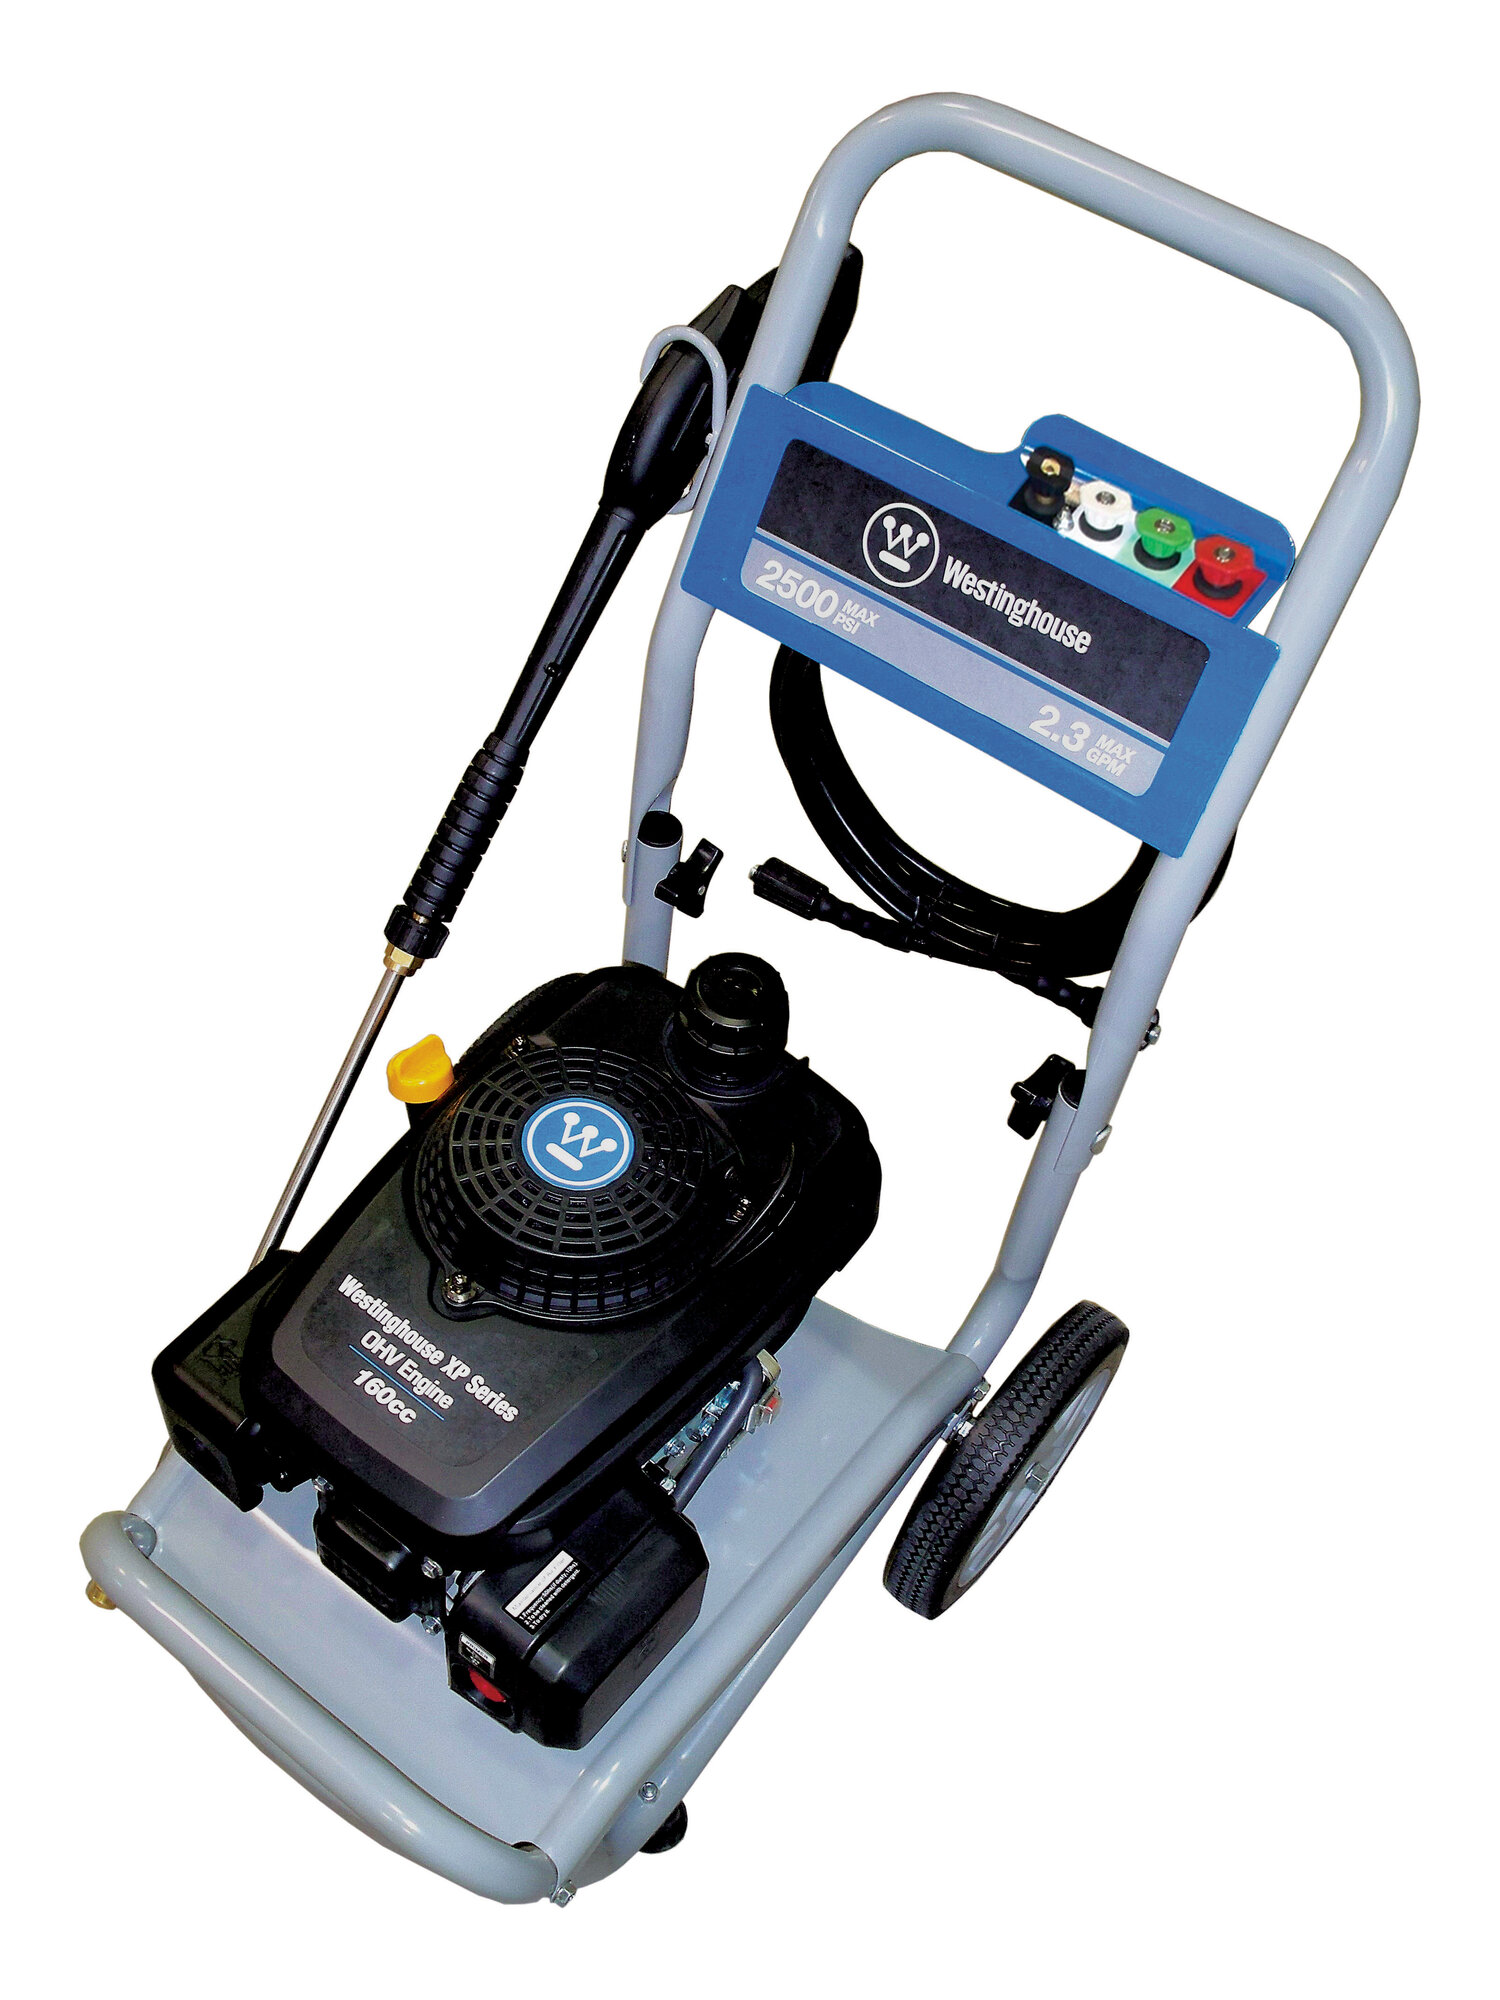 westinghouse power products 2500 psi power pressure washer ebay. Black Bedroom Furniture Sets. Home Design Ideas